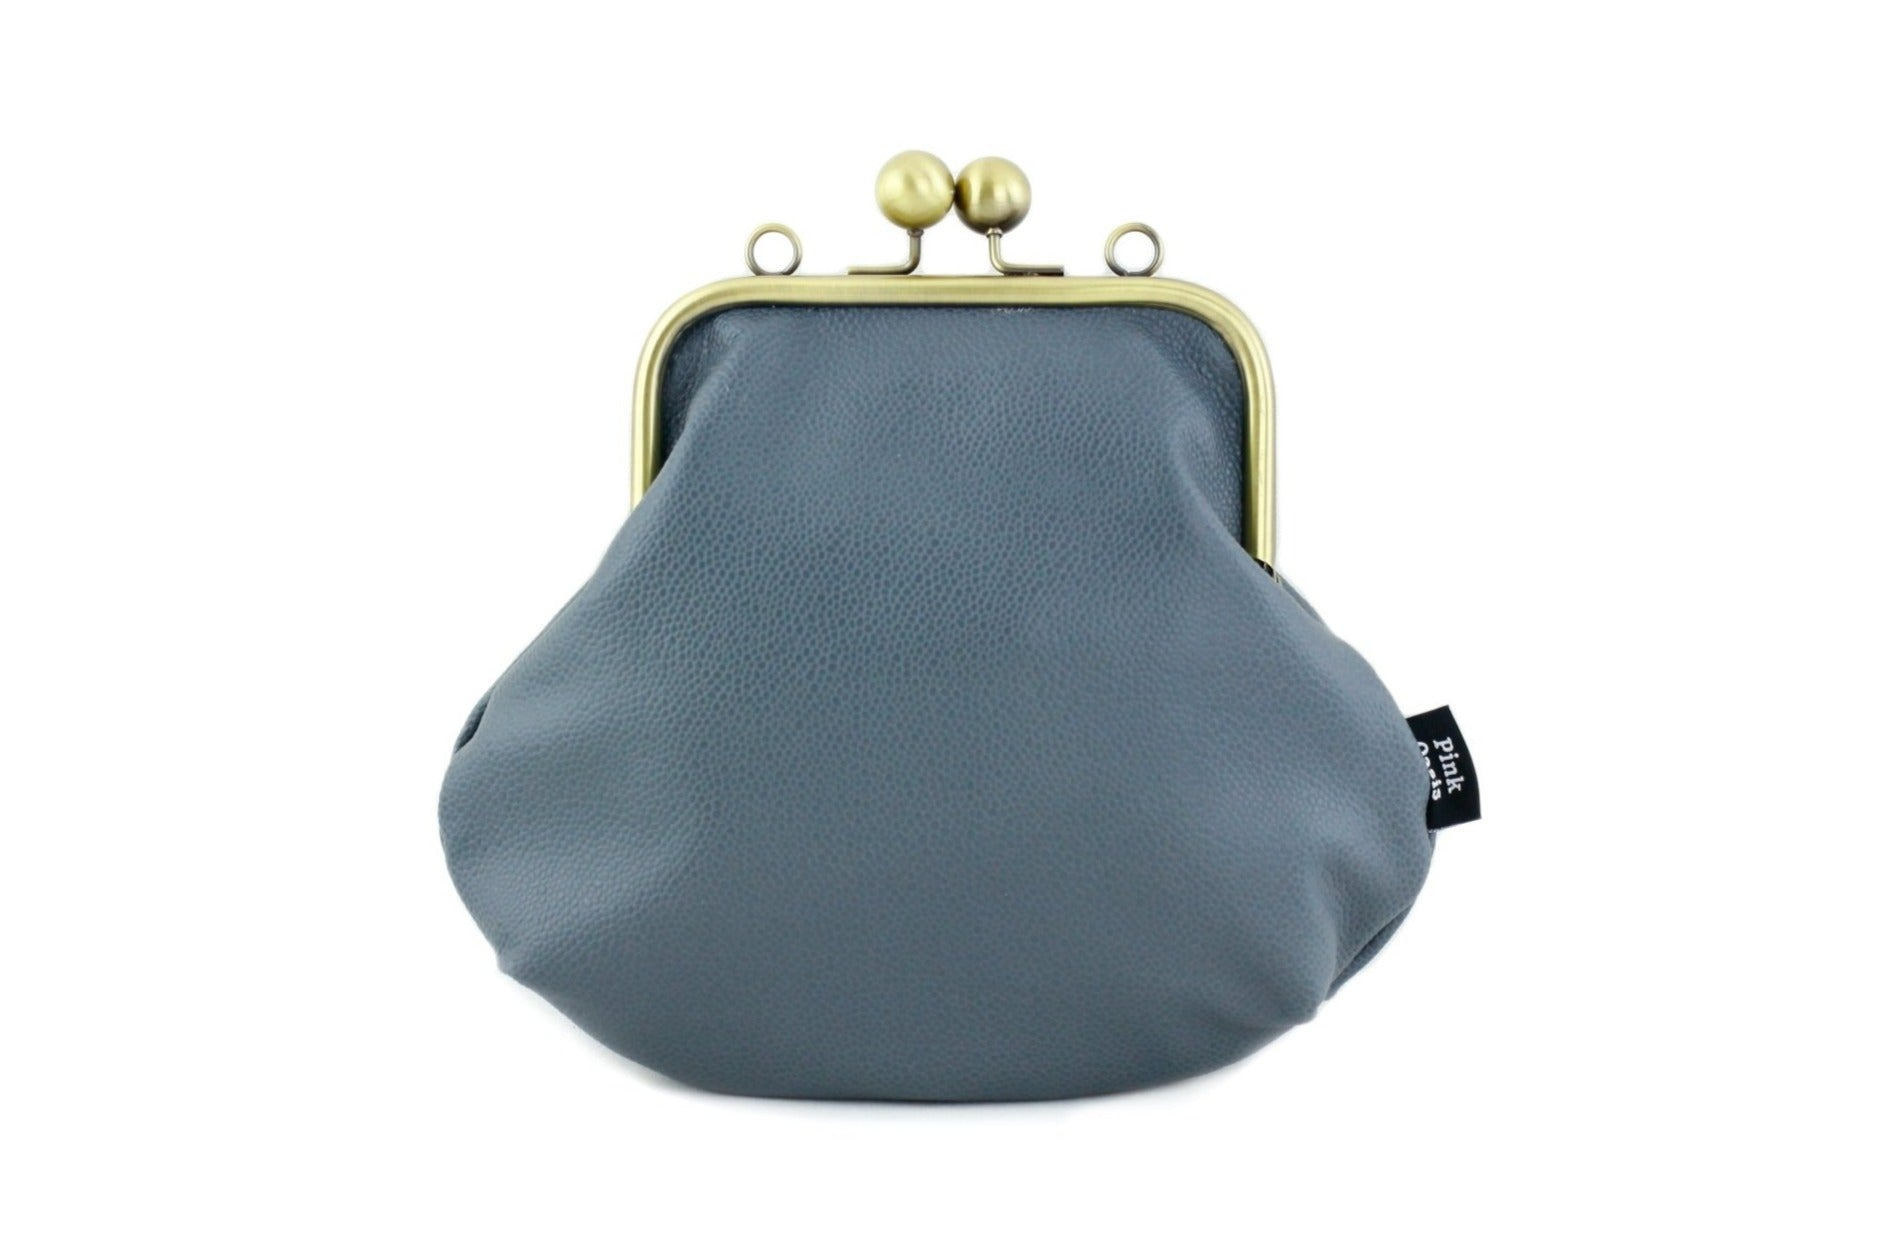 Women's Ash Grey Genuine Leather Clutch Bag with Strap | PINKOASIS